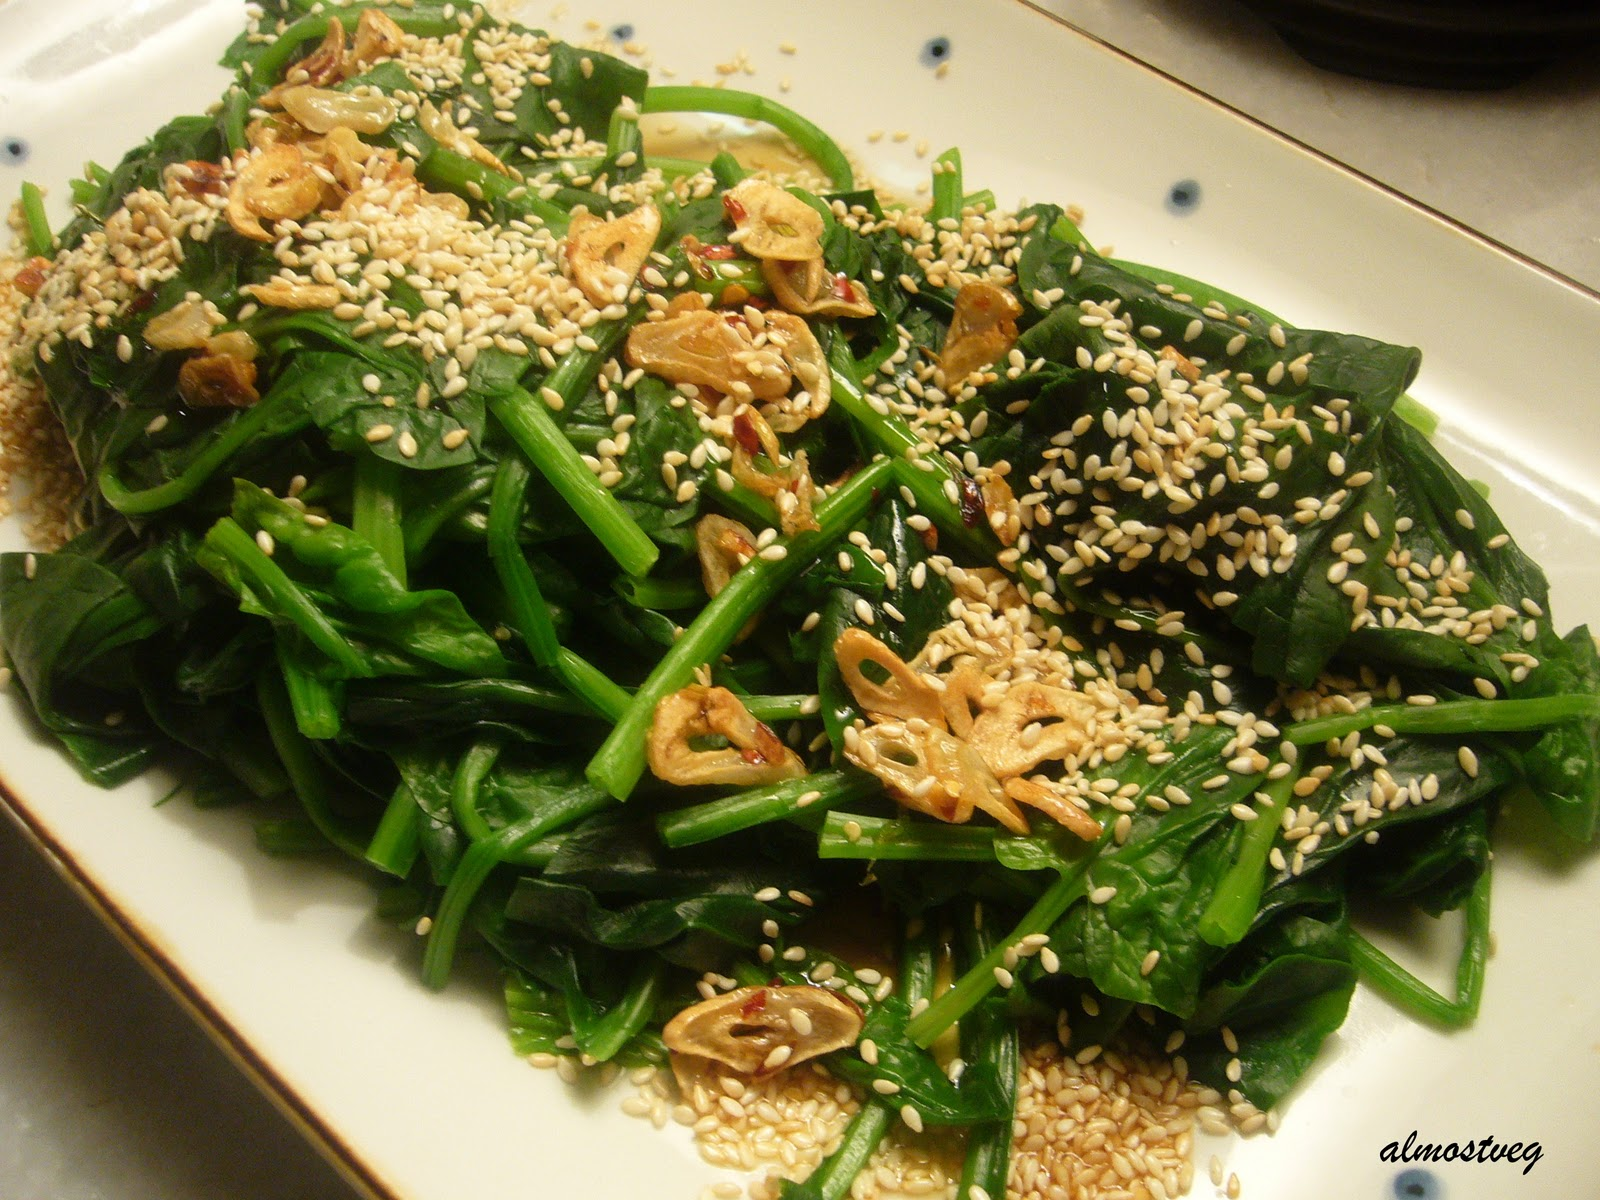 Steamed spinach with garlic chips